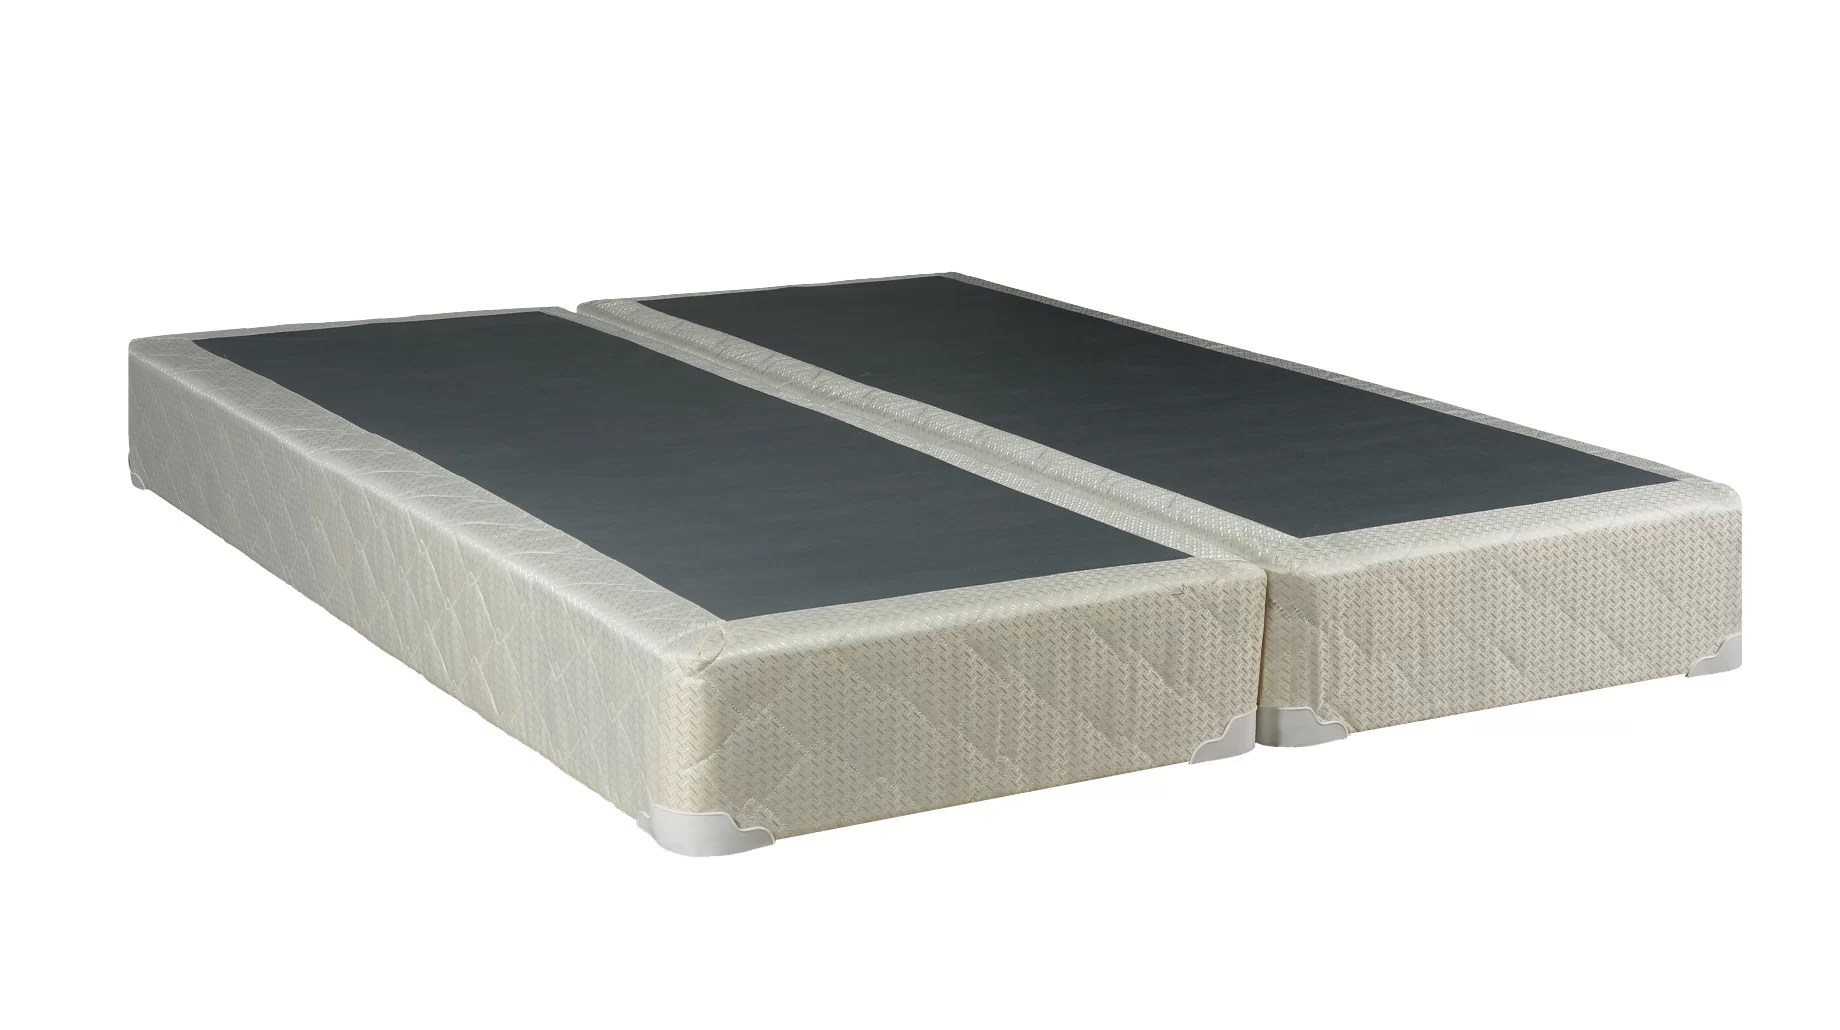 Spinal Solution Hollywood Split Queen Size Box Spring